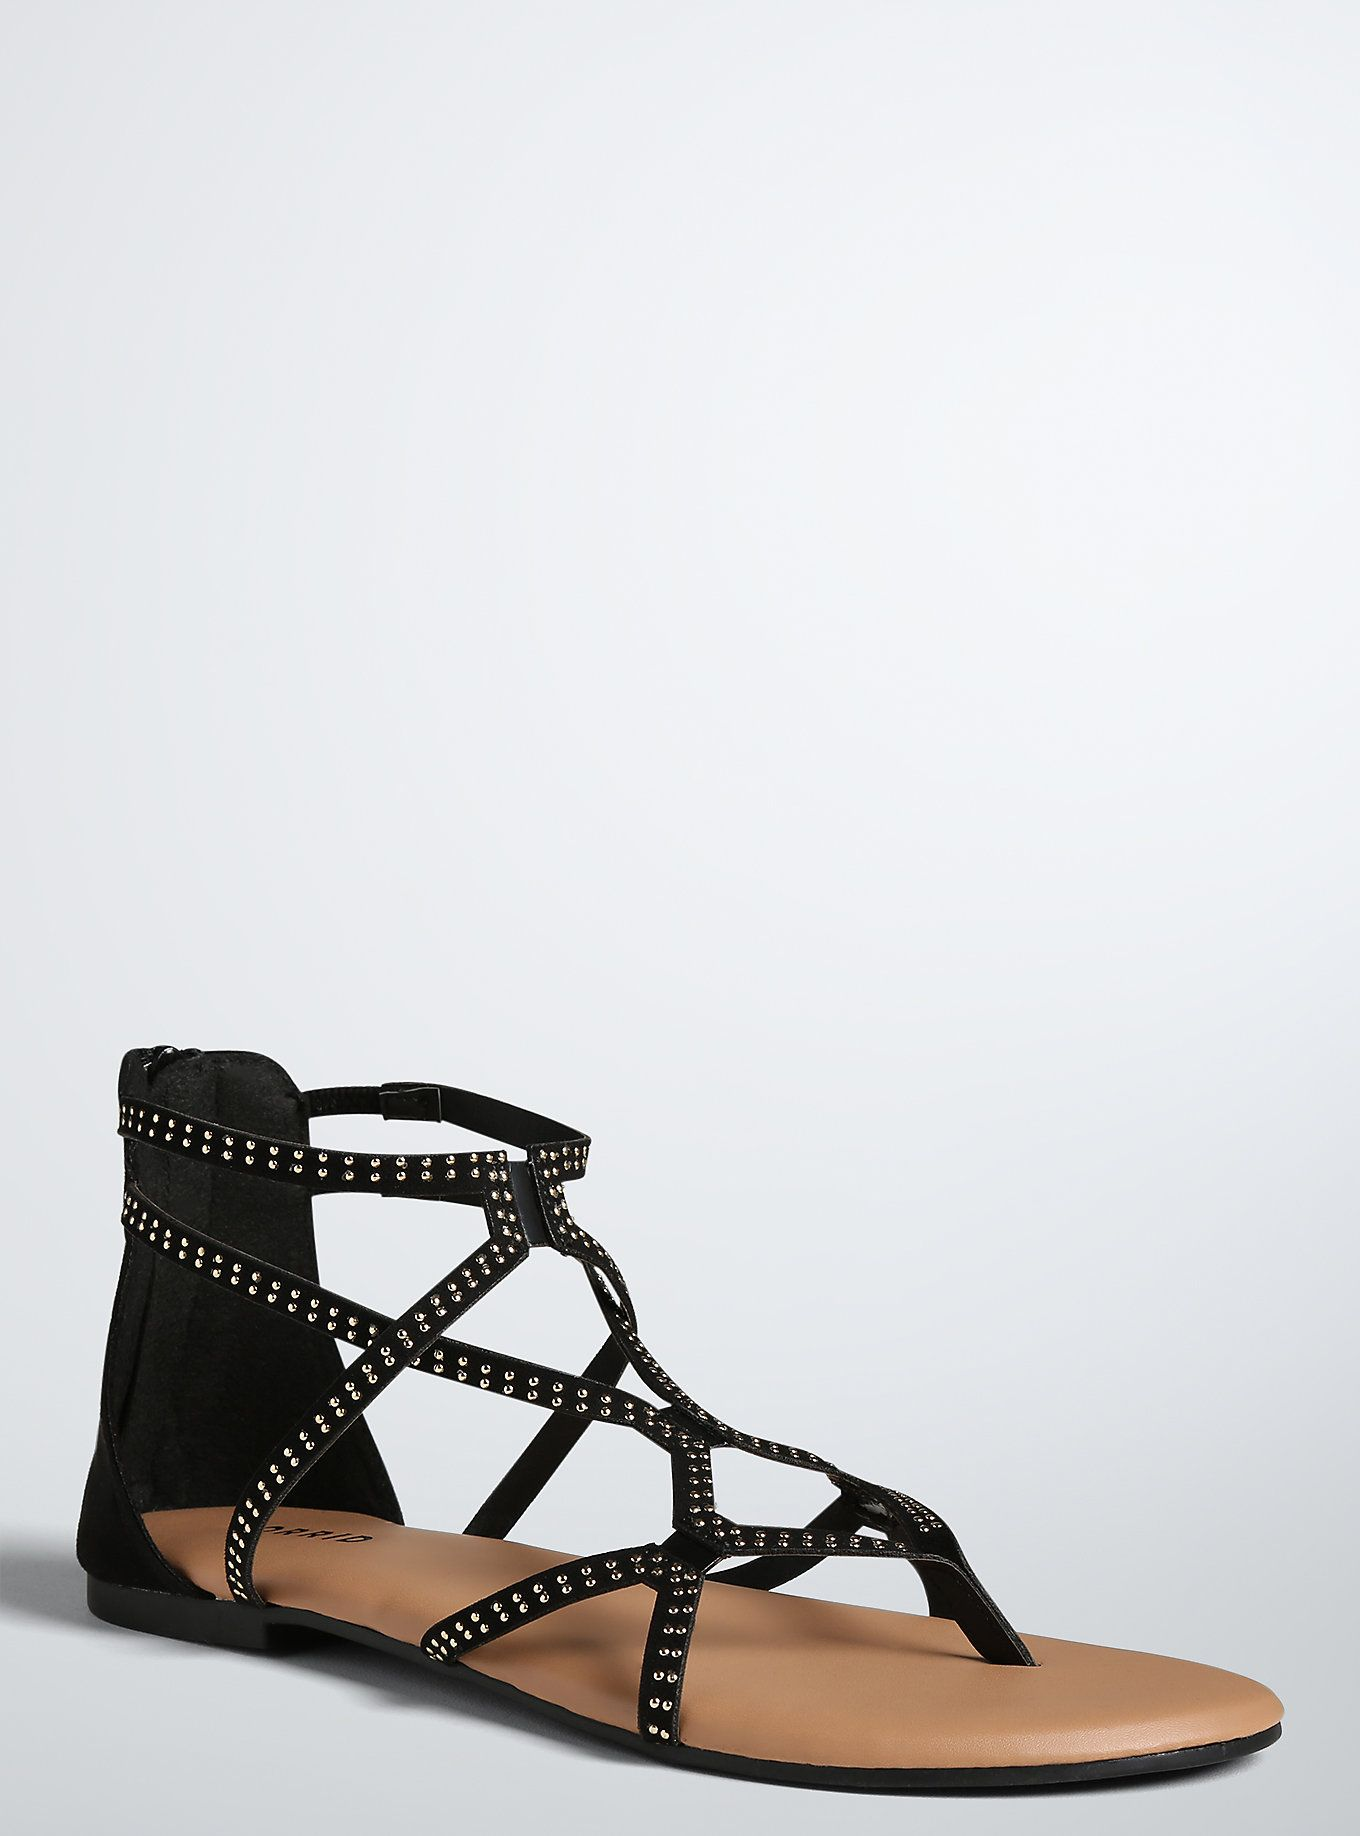 69a2dcb5c4e Studded Gladiator Sandals (Wide Width)